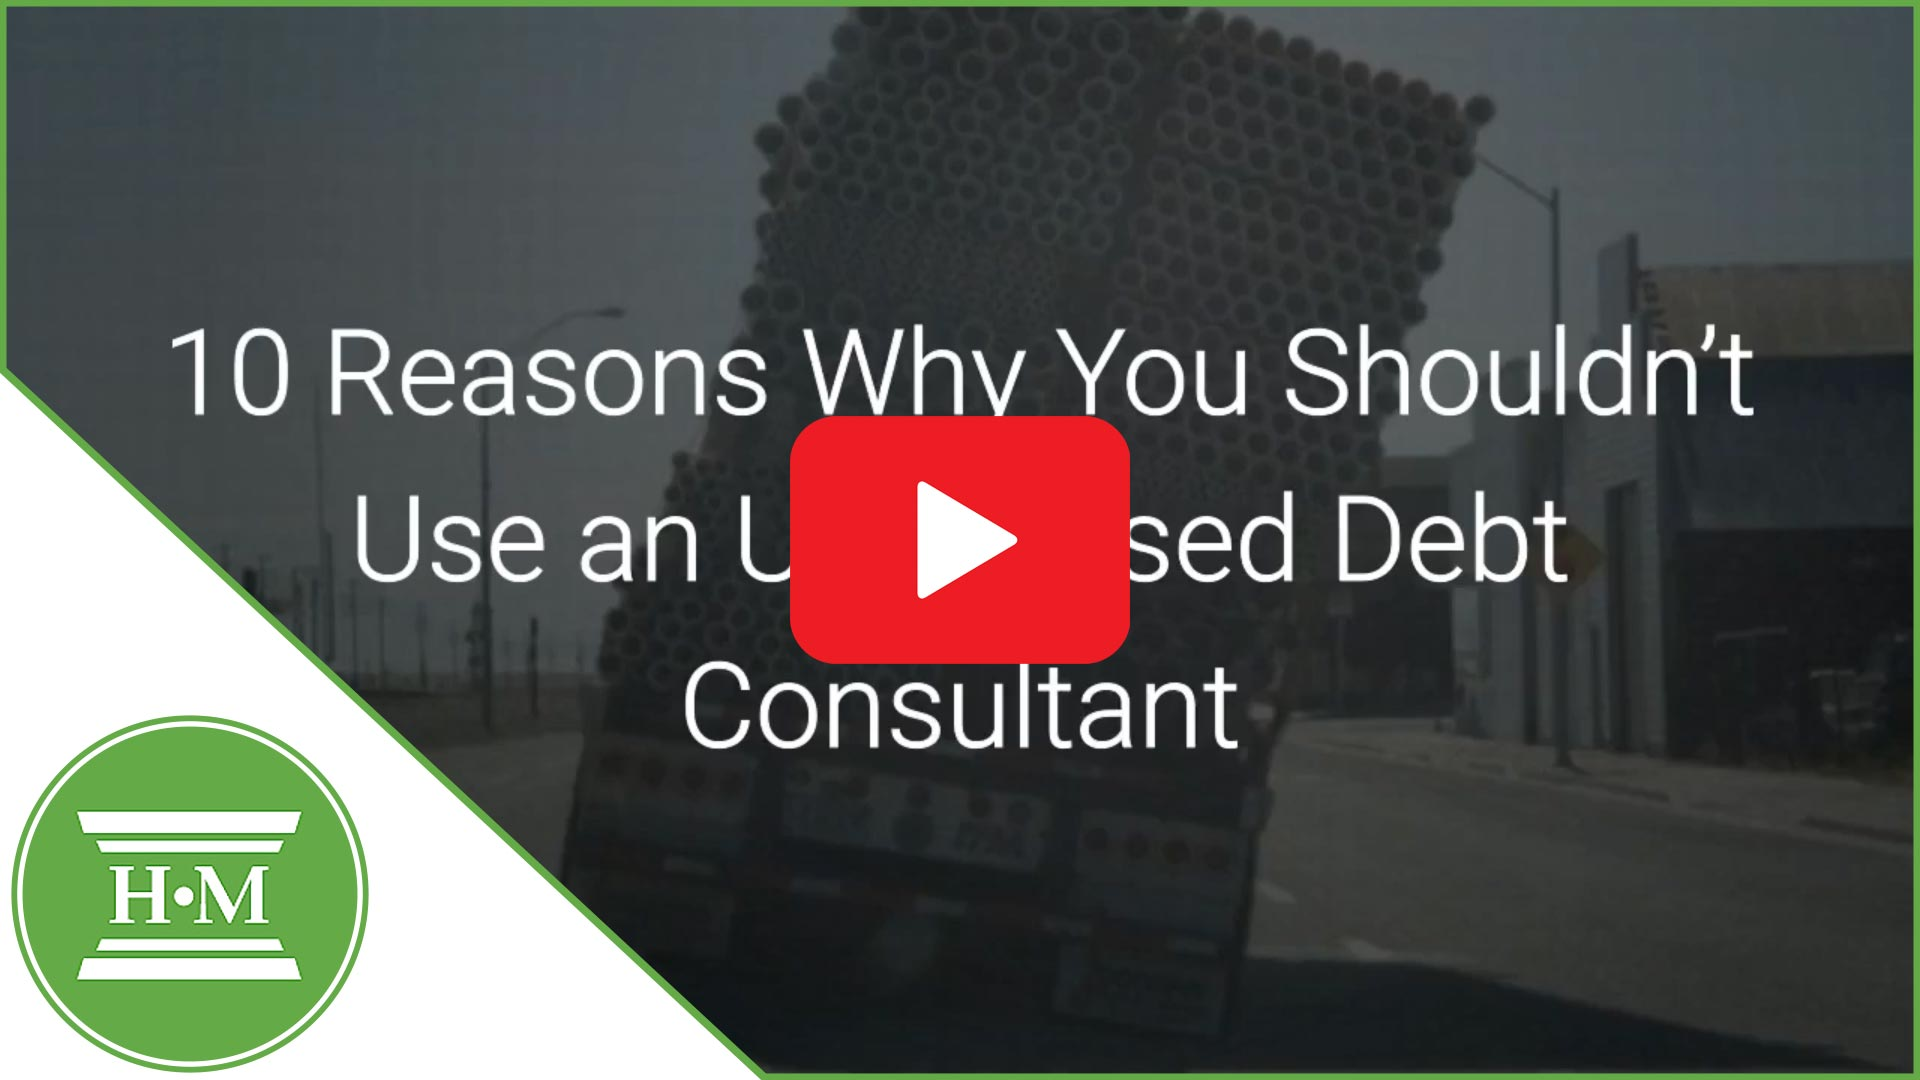 10 reasons why you shouldn't use a debt consultant